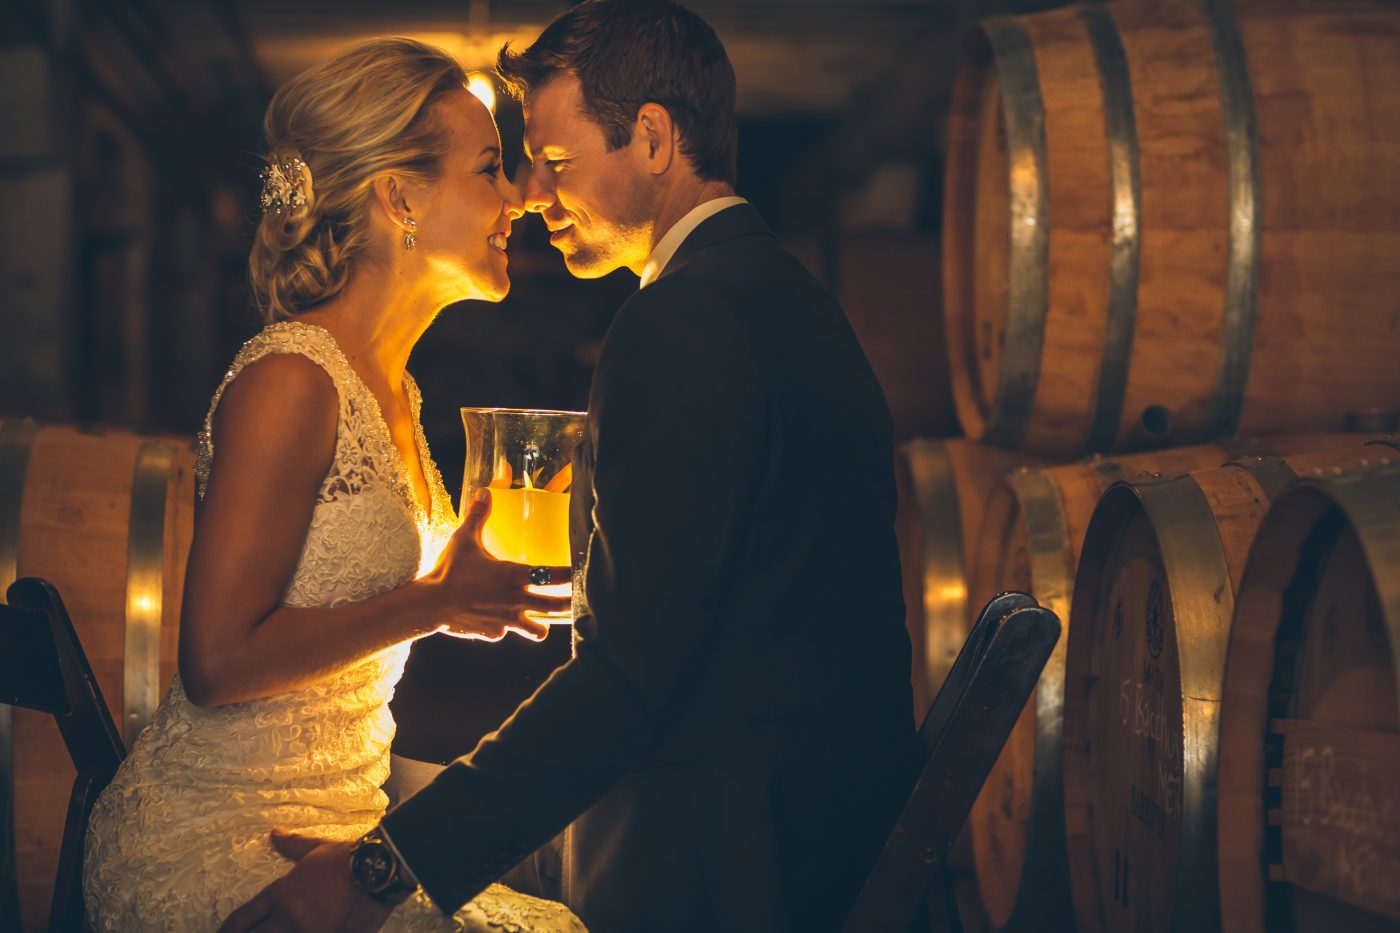 Barrel Room Photos at Barrister | Spokane Events